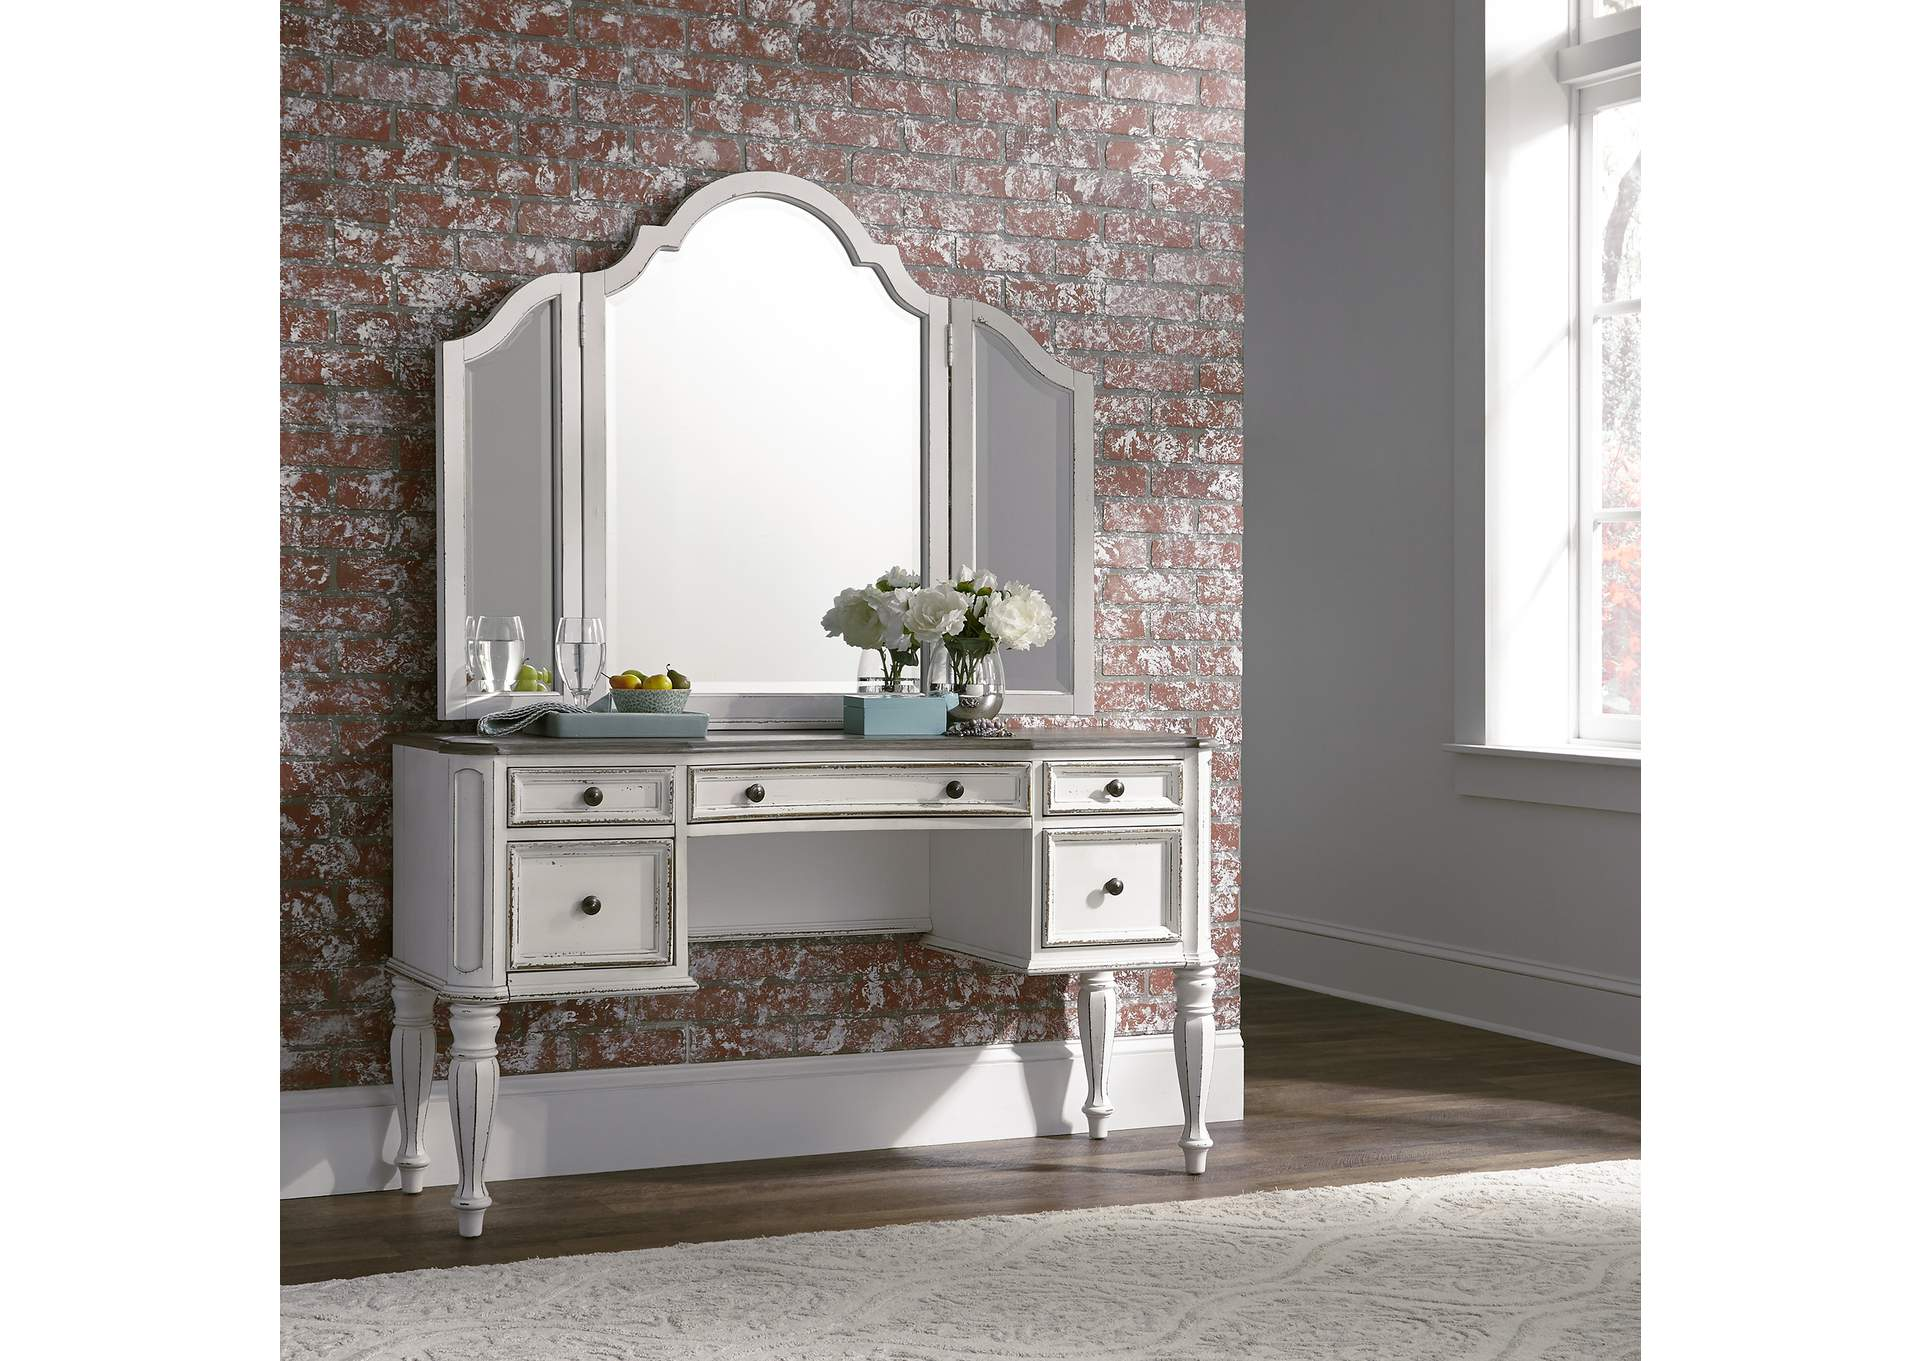 Magnolia Manor Antique White Vanity Set,Liberty